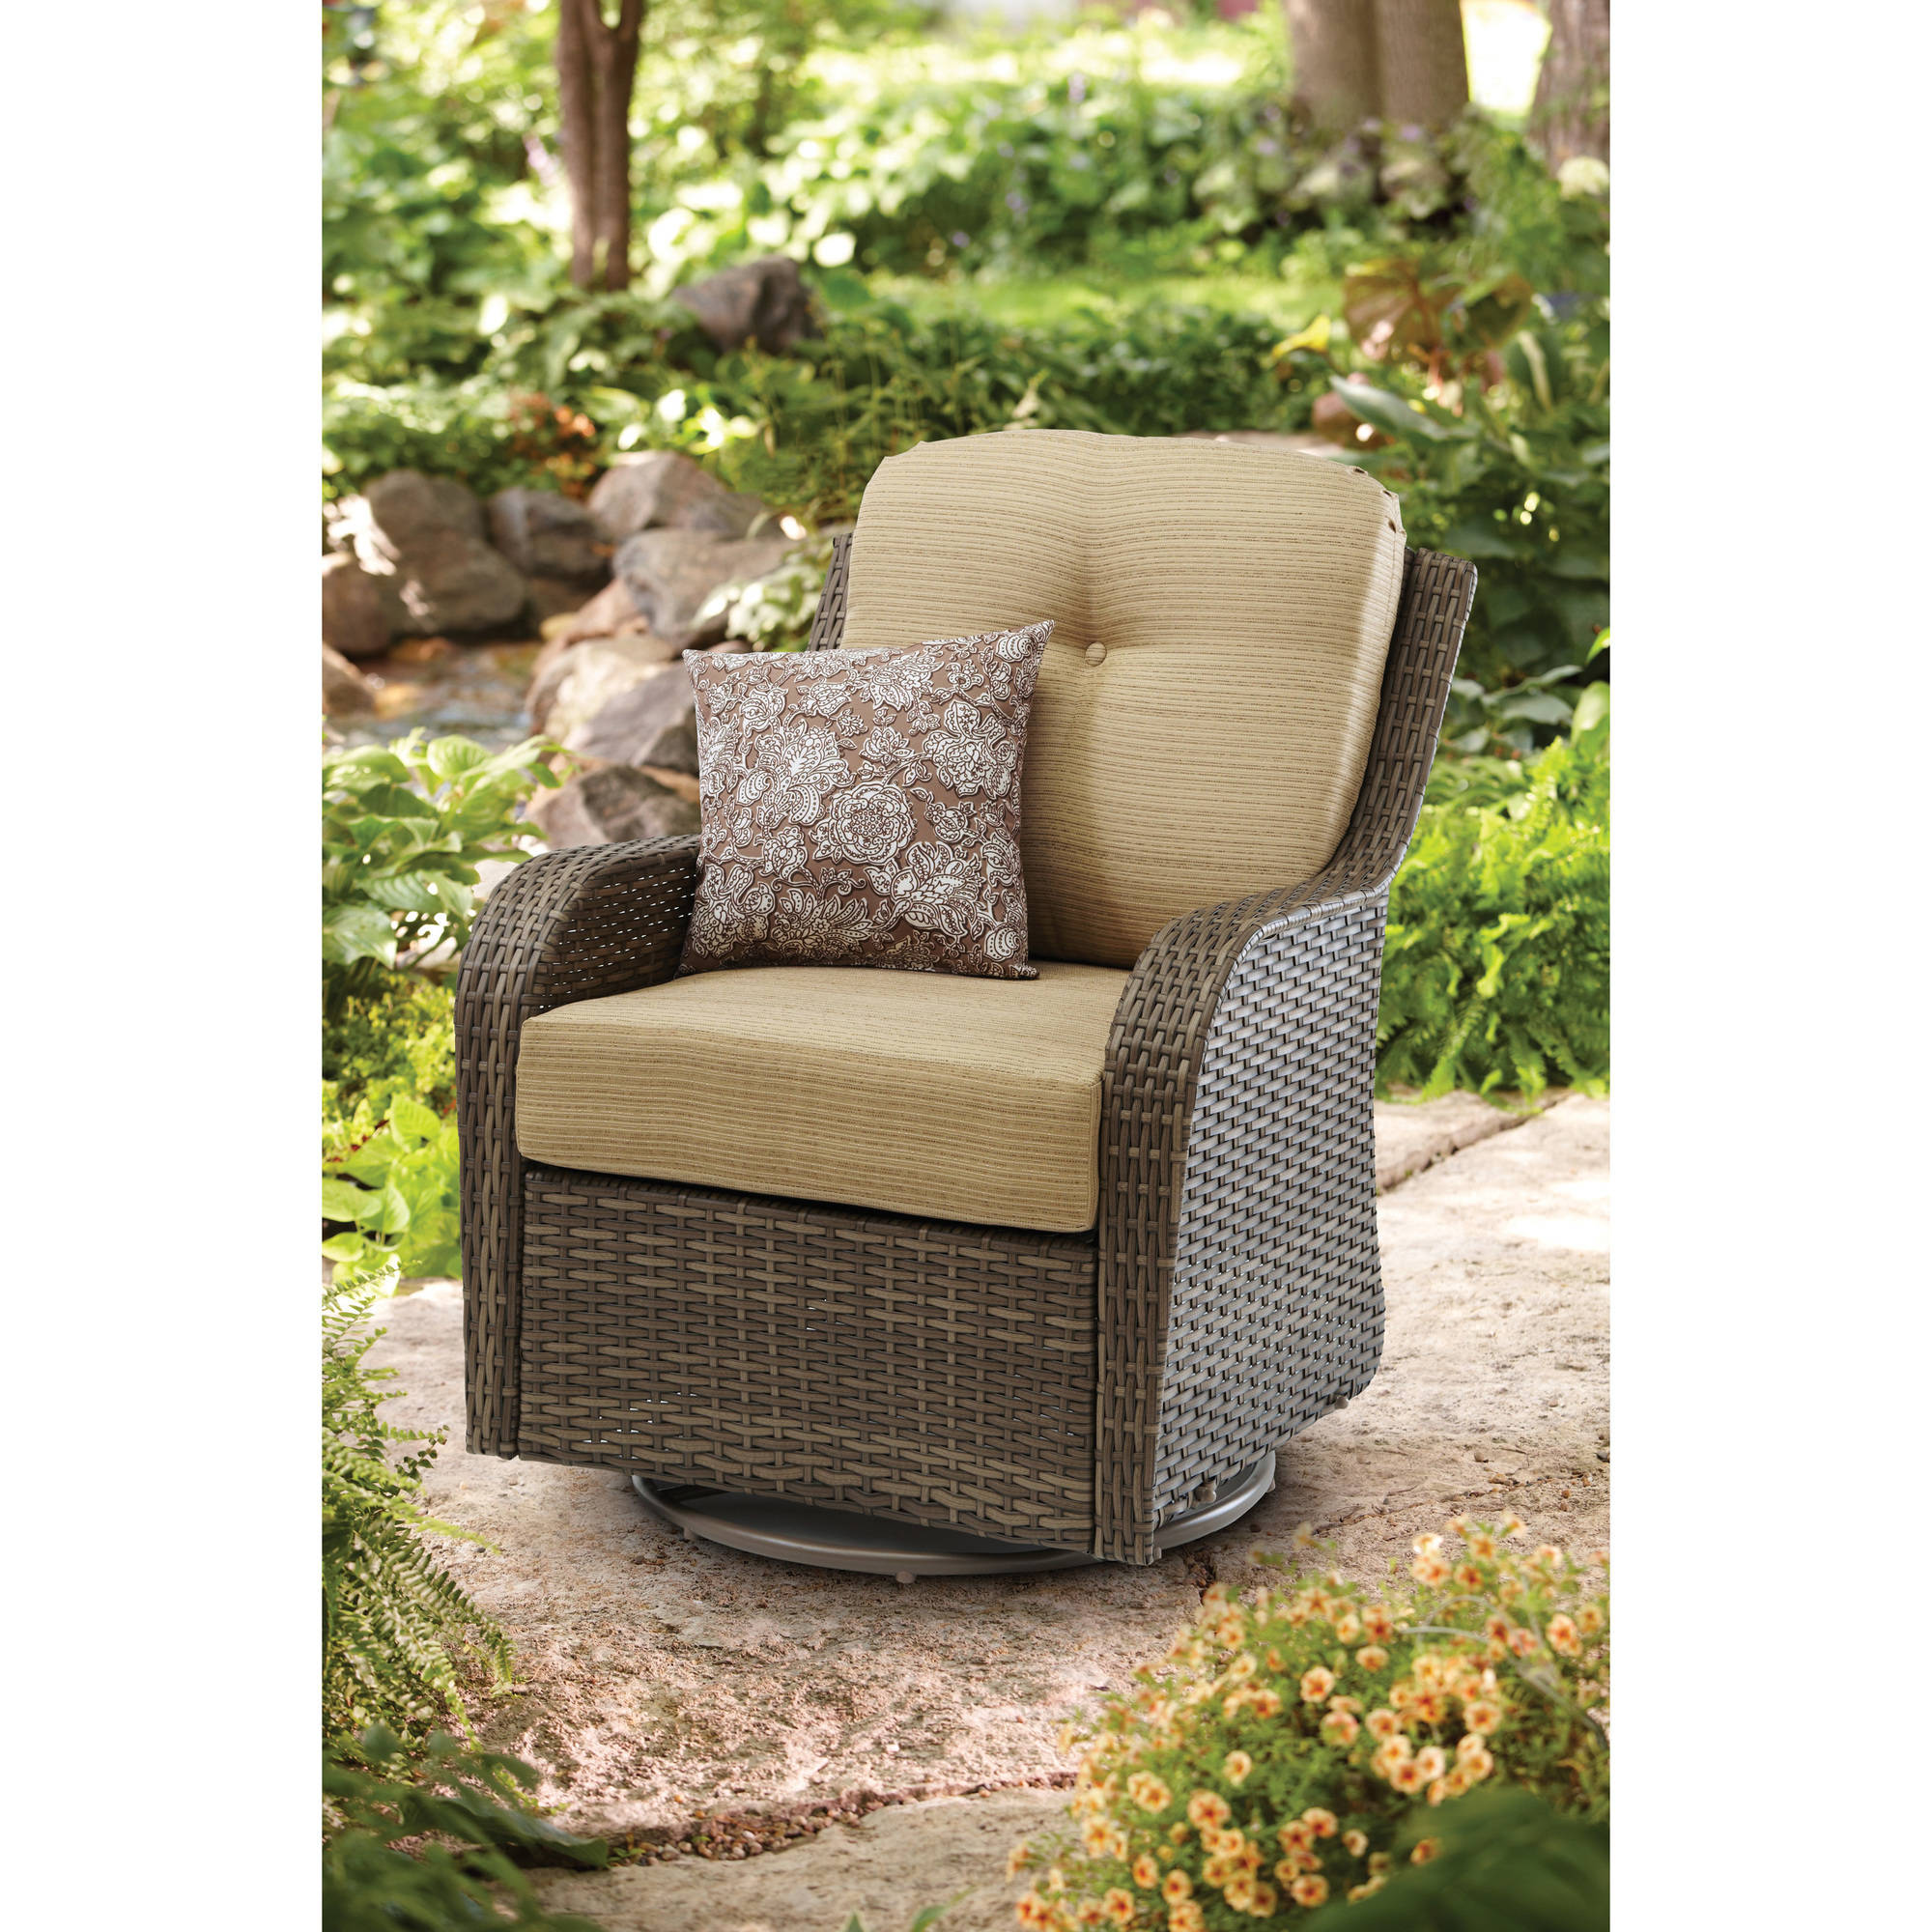 Better homes and gardens mckinley crossing all motion chair walmart com